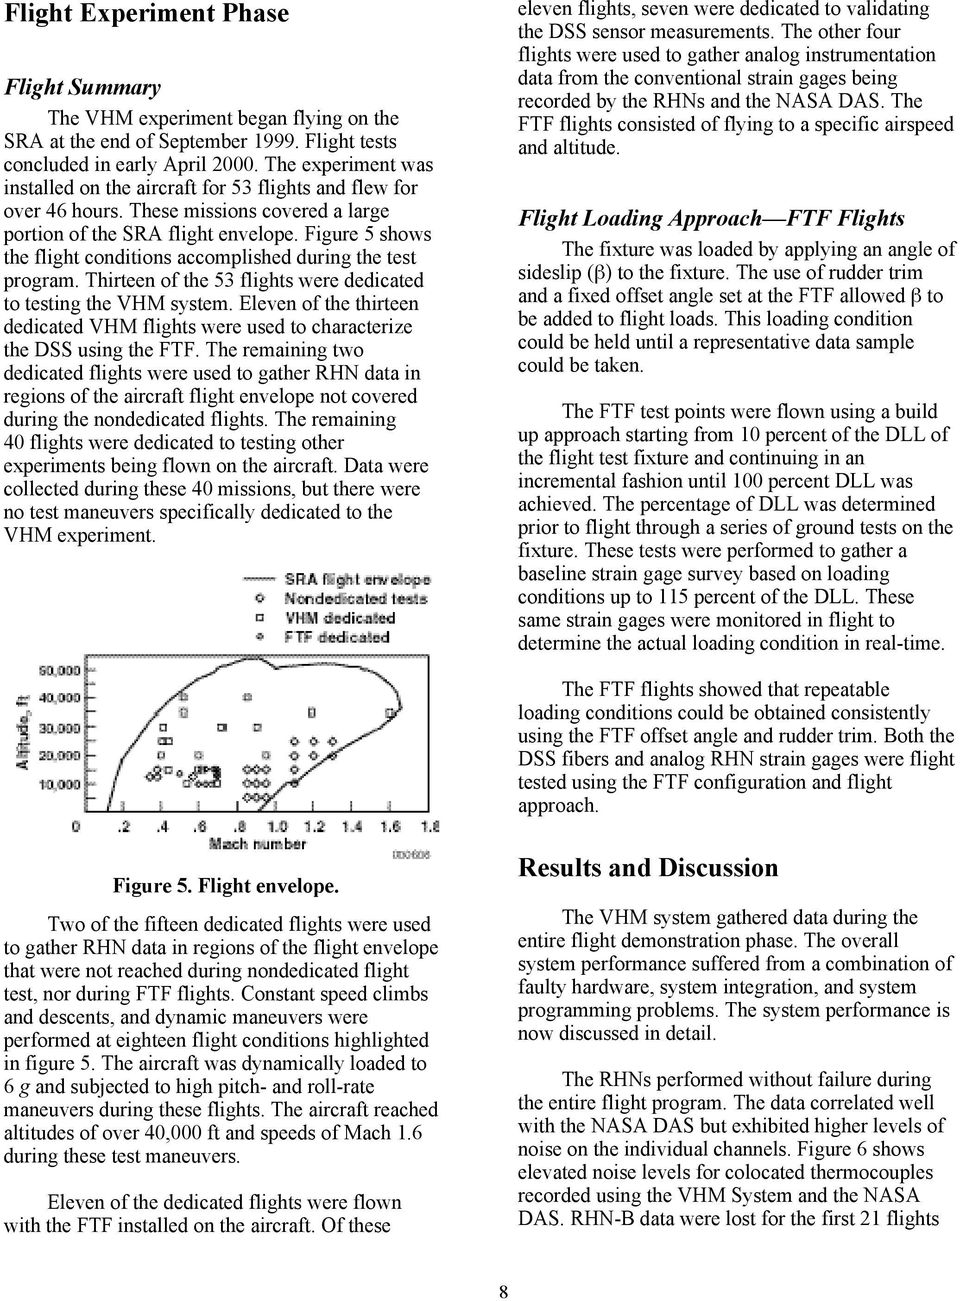 Figure 5 shows the flight conditions accomplished during the test program. Thirteen of the 53 flights were dedicated to testing the VHM system.